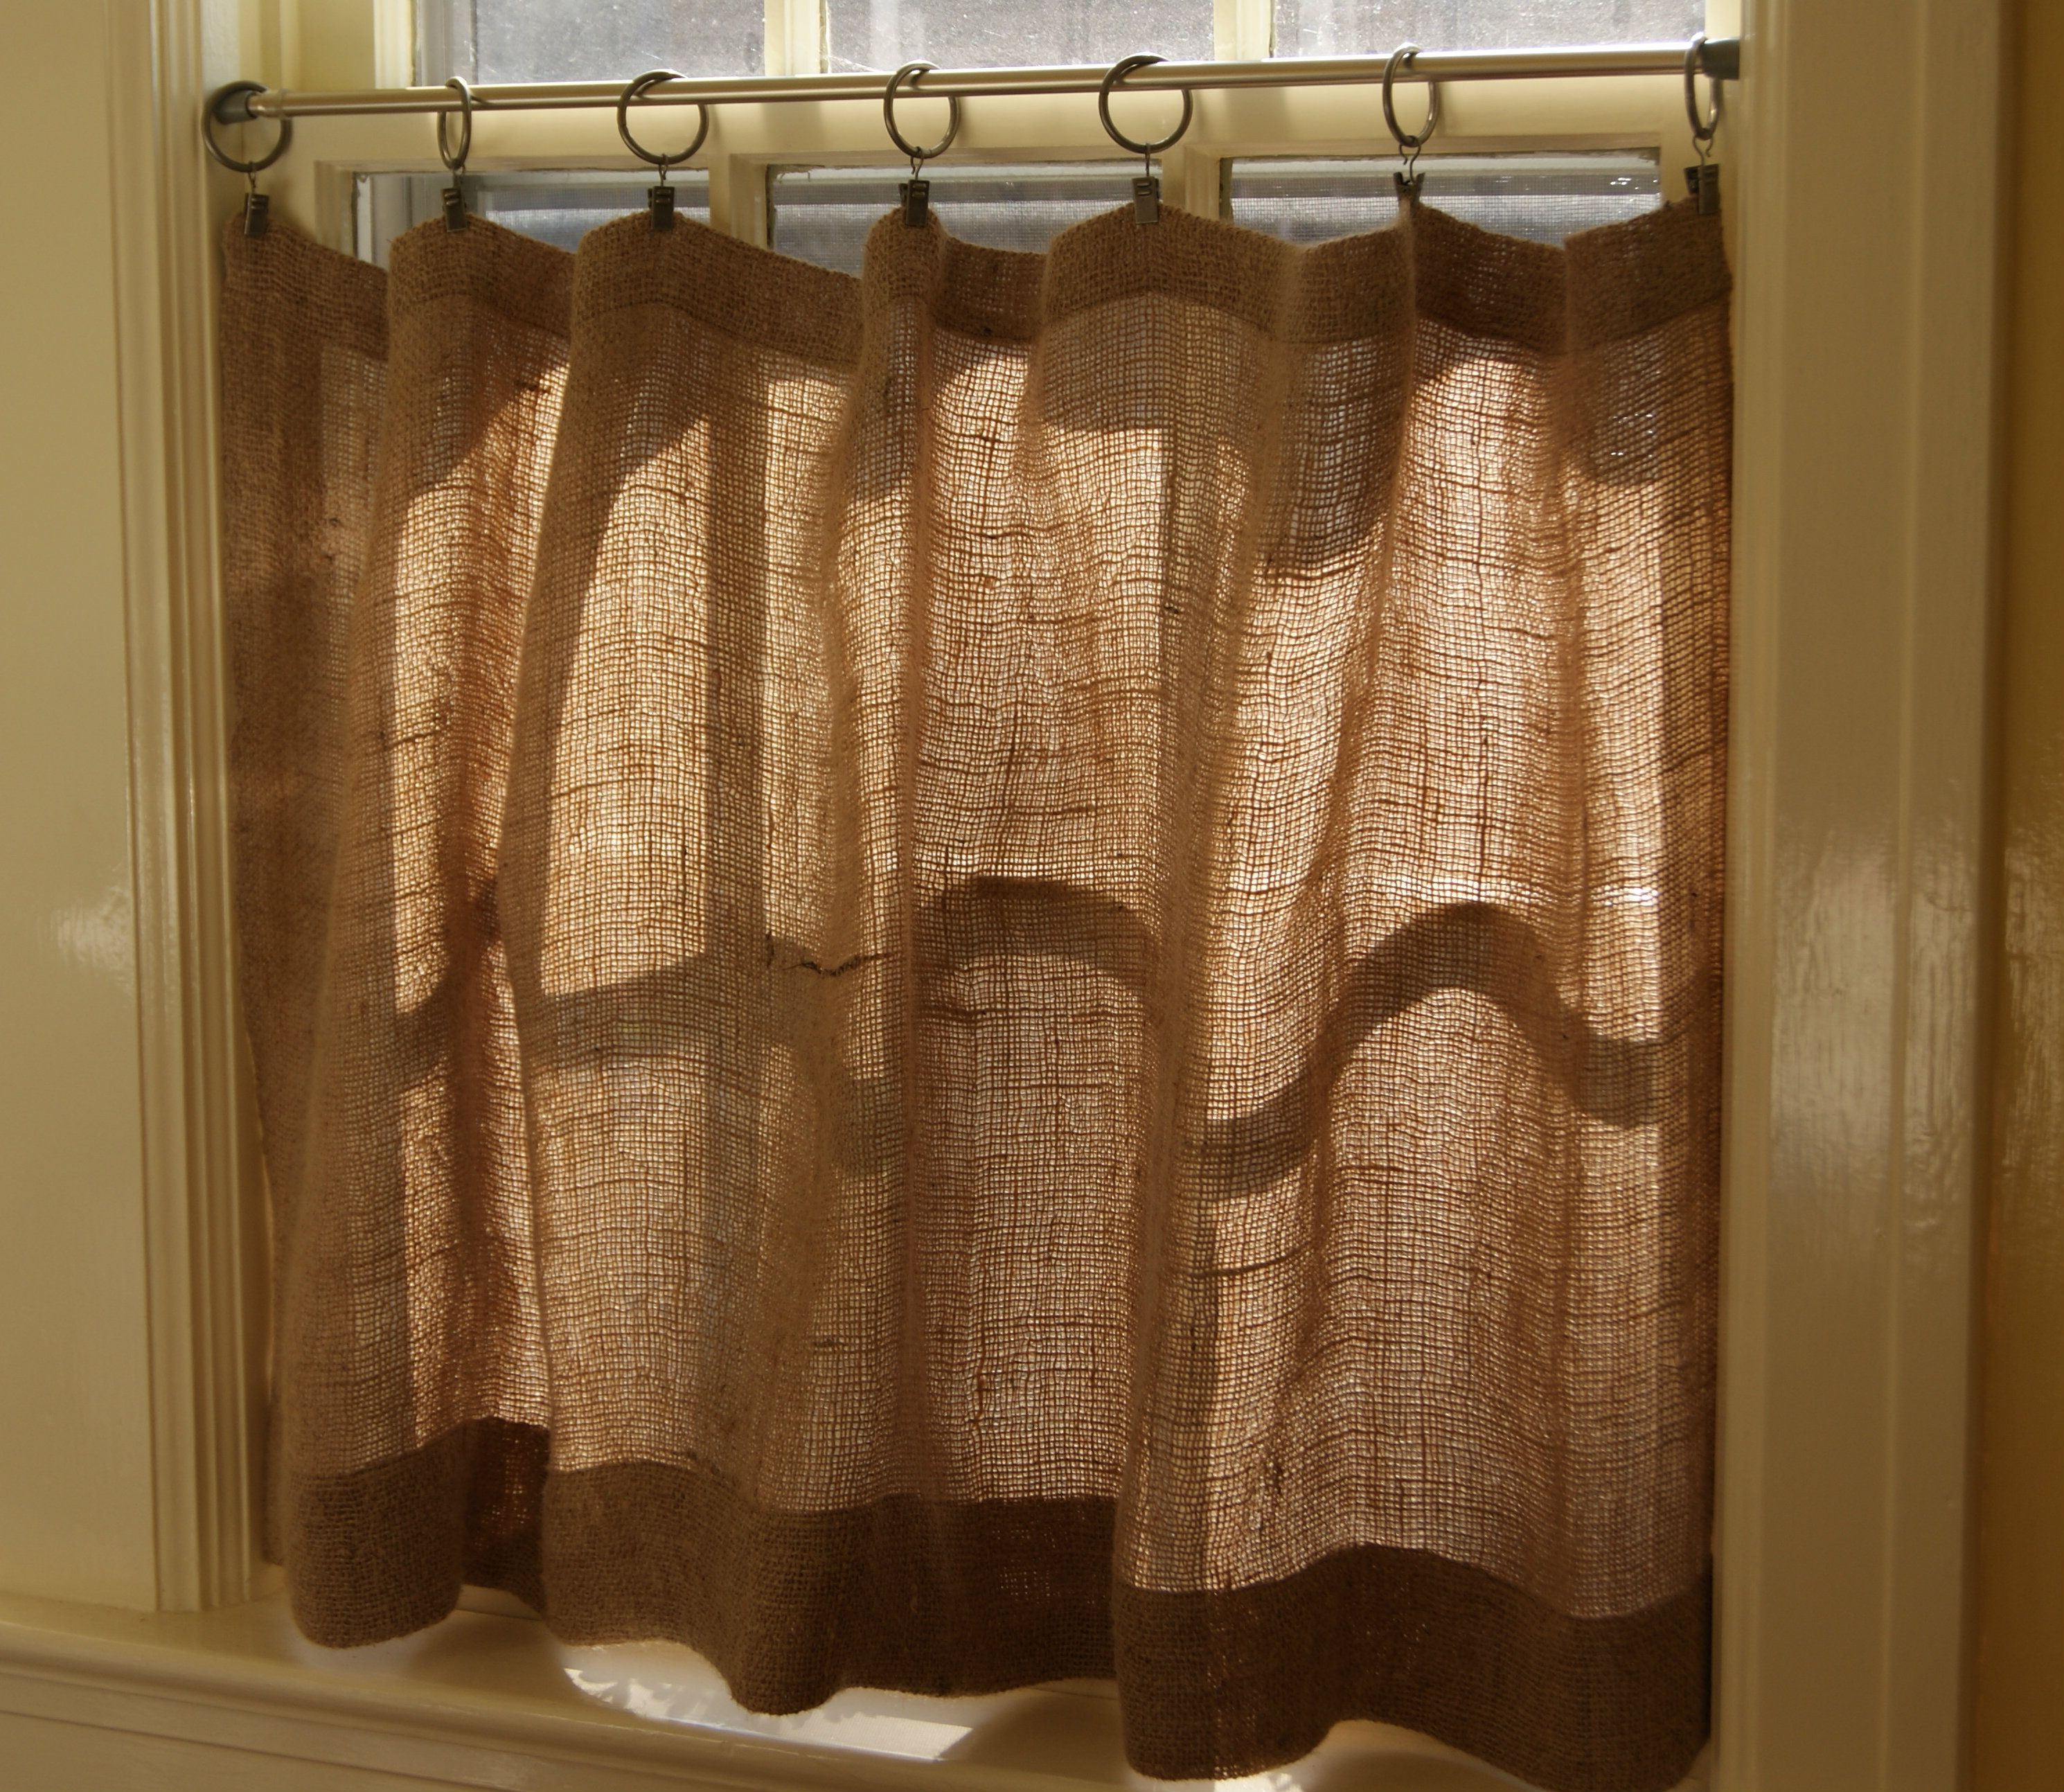 curtains full inch drapes impressive gorgeous walmart size kitchen striped pleat camo for blue fascinating curtain at acceptable astounding enchanting panels black pleasurable pinch brown walmar magnificent small awesome grommet of valances window valance